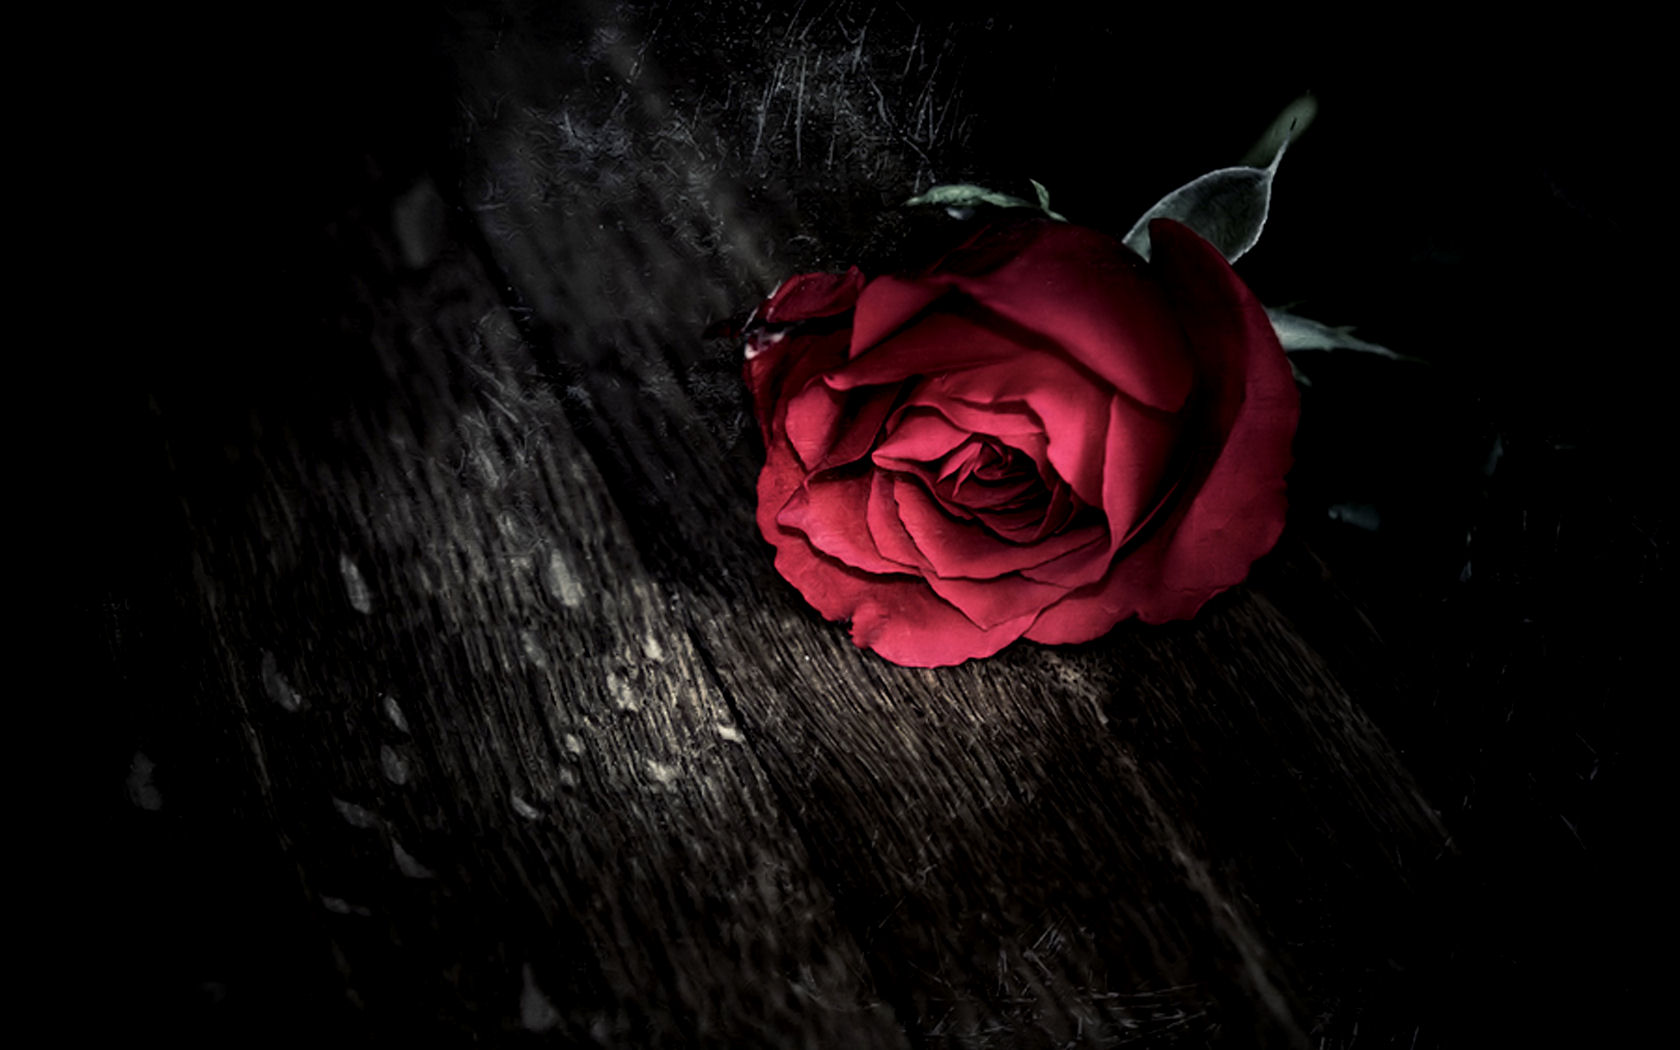 Dark Love Wallpapers 8199 Hd Wallpapers in Love - Imagesci com